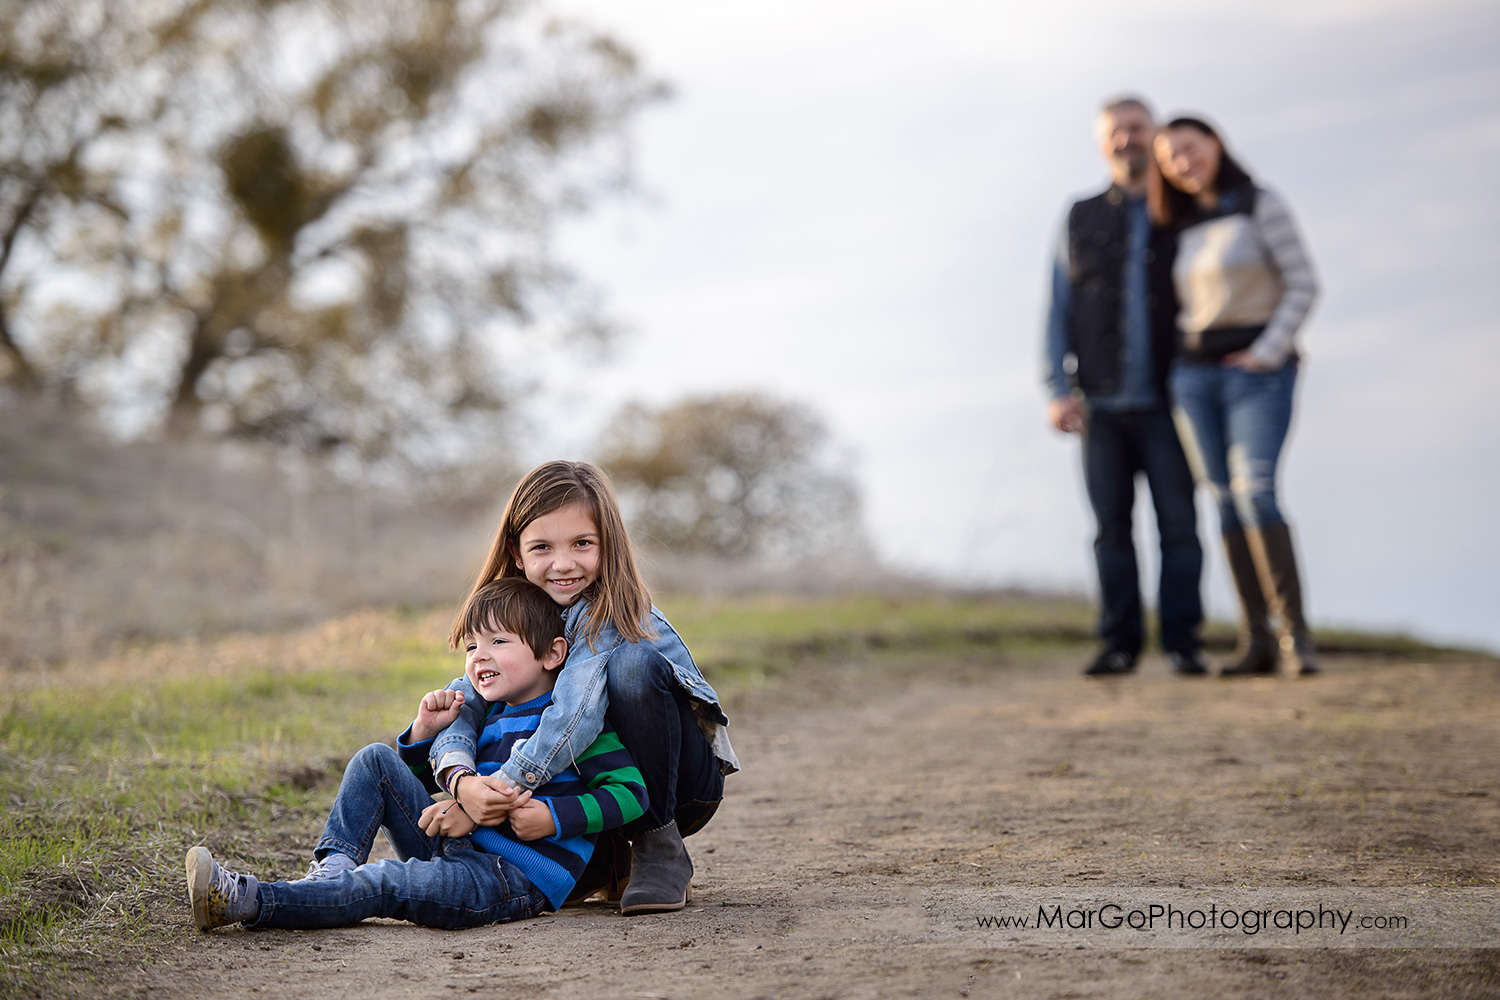 young girl hugging little boy with mother and father standing in background during family session at Diablo Foothills Regional Park in Walnut Creek